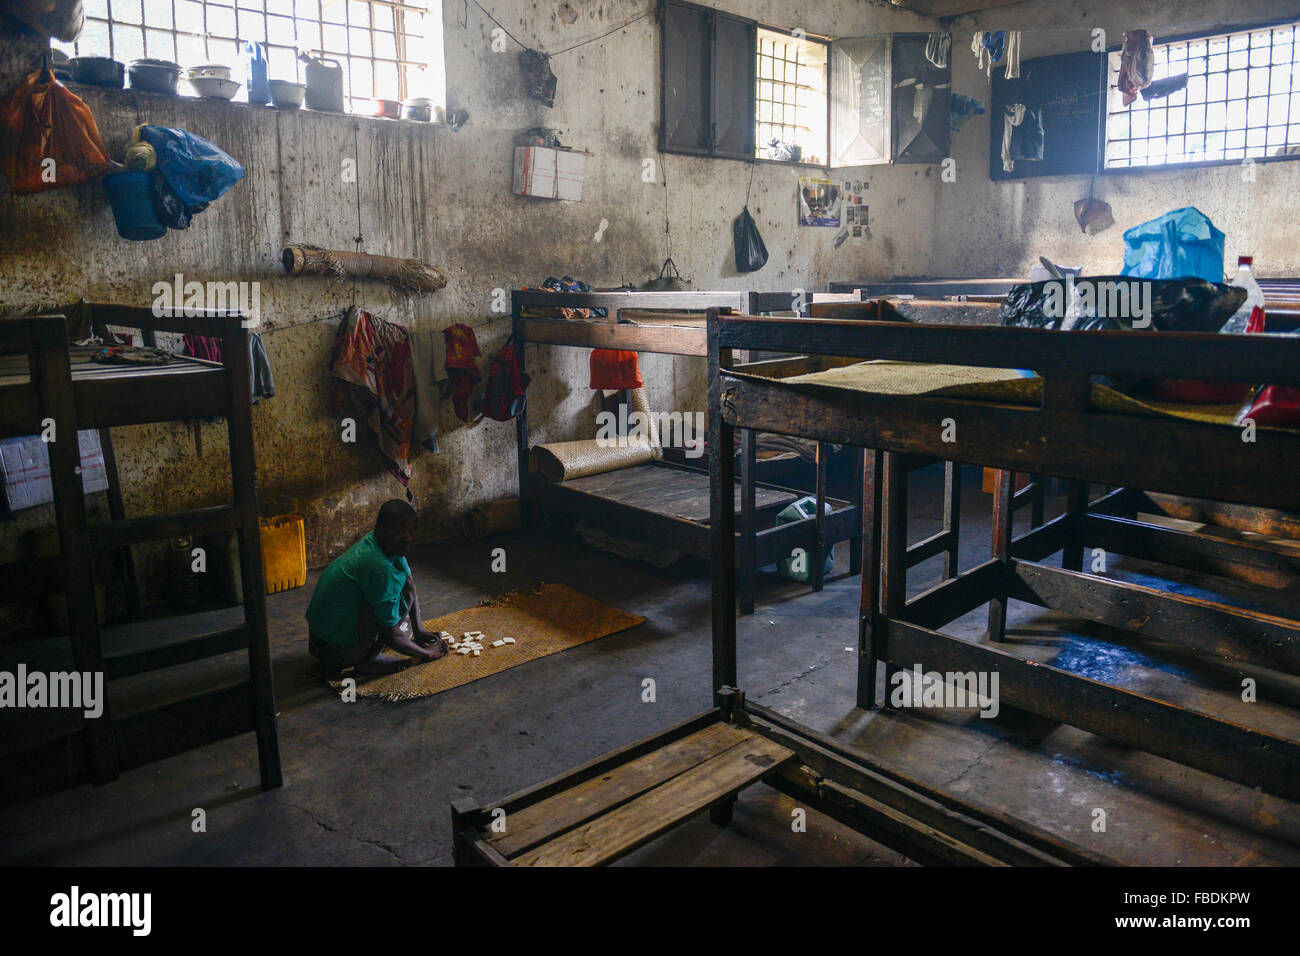 MADAGASCAR, Mananjary, prison, many detainees wait long time for their trial - Stock Image